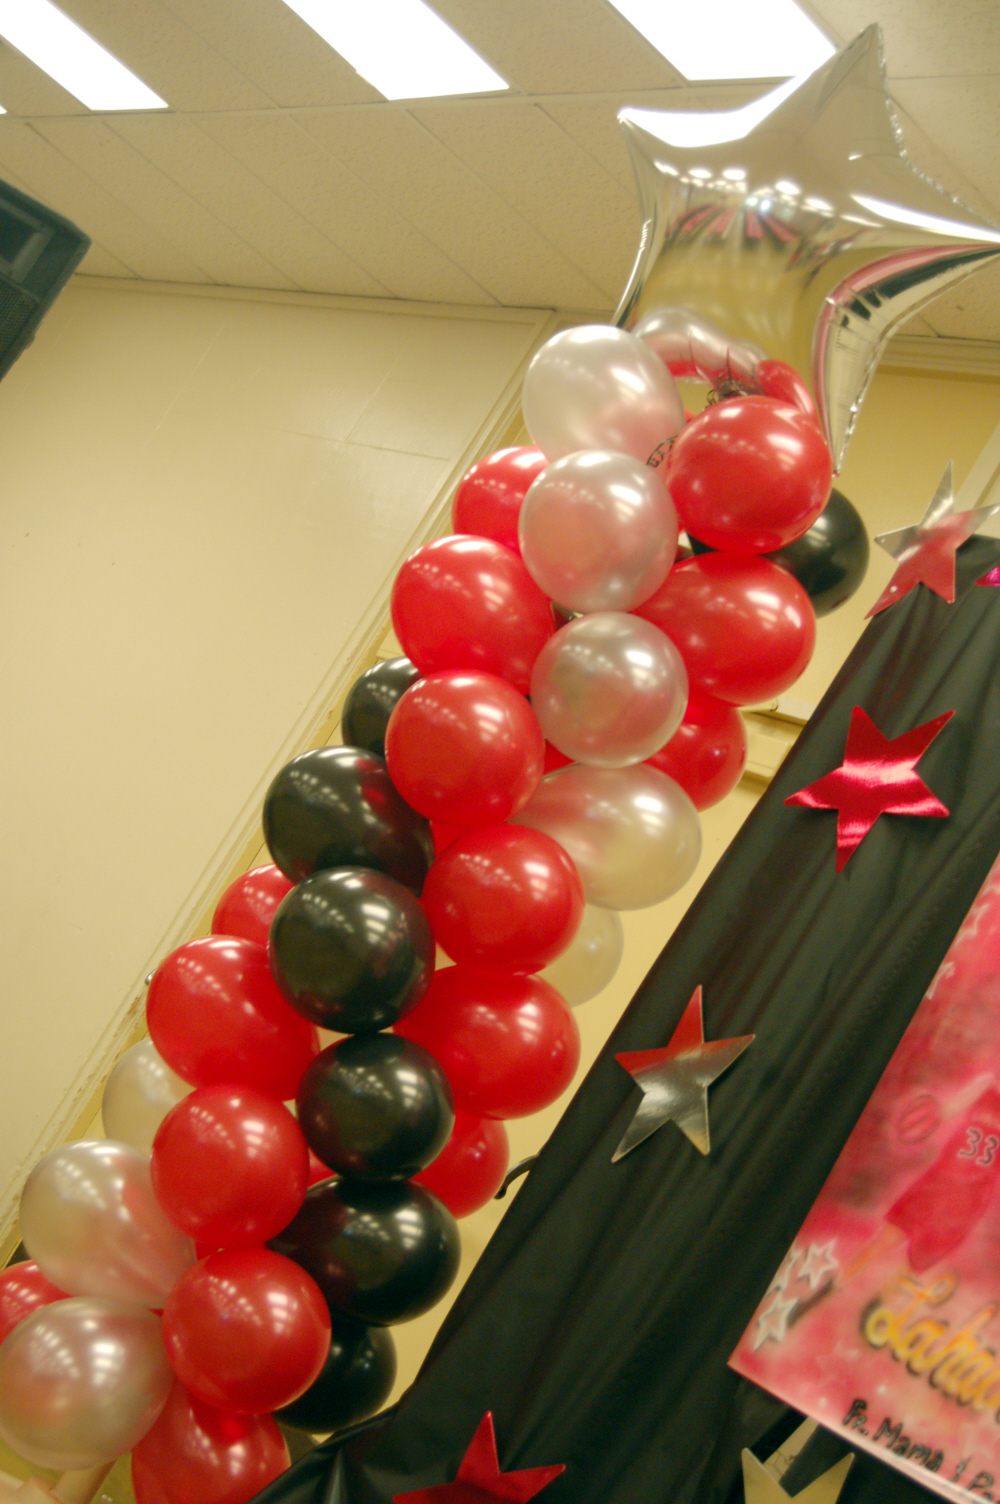 Lahainaluna Graduation 2009 - Balloon Decorations | Sweet ...